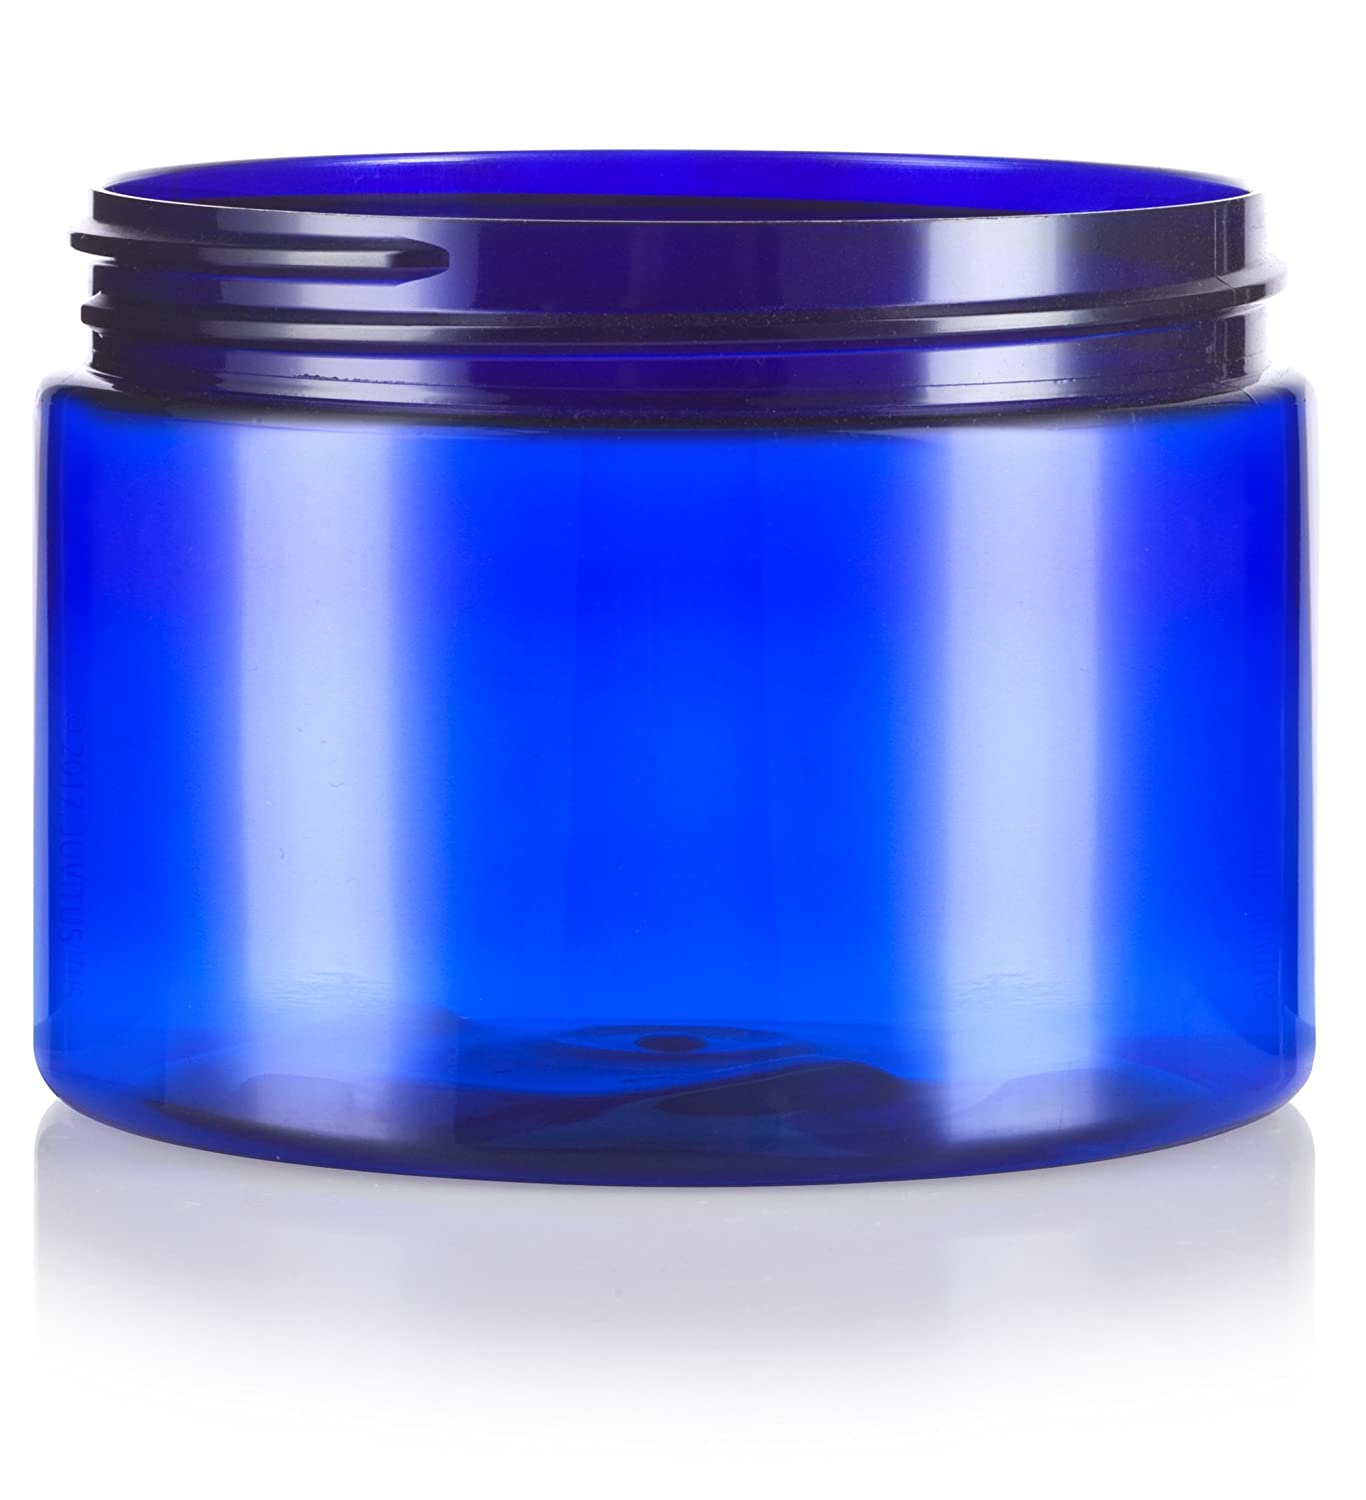 Cobalt Blue PET Plastic 12 oz 12 Pack Refillable Low Profile Jar with Gold Metal Overshell Lid + Spatulas and Labels JUVITUS JUVCBJG1212 BPA Free